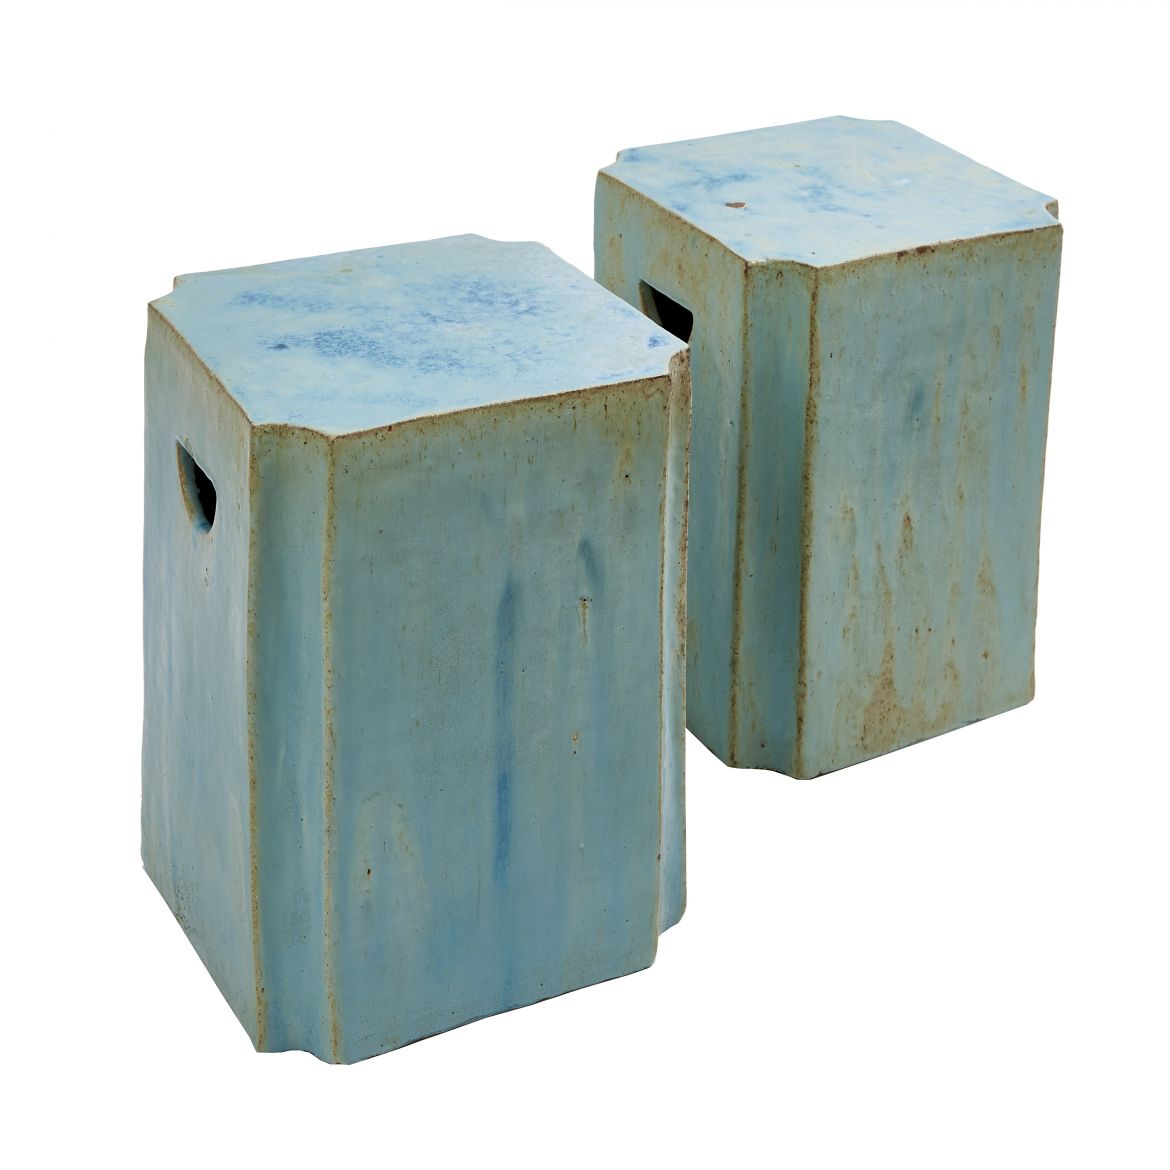 Green Canted Corner Stools